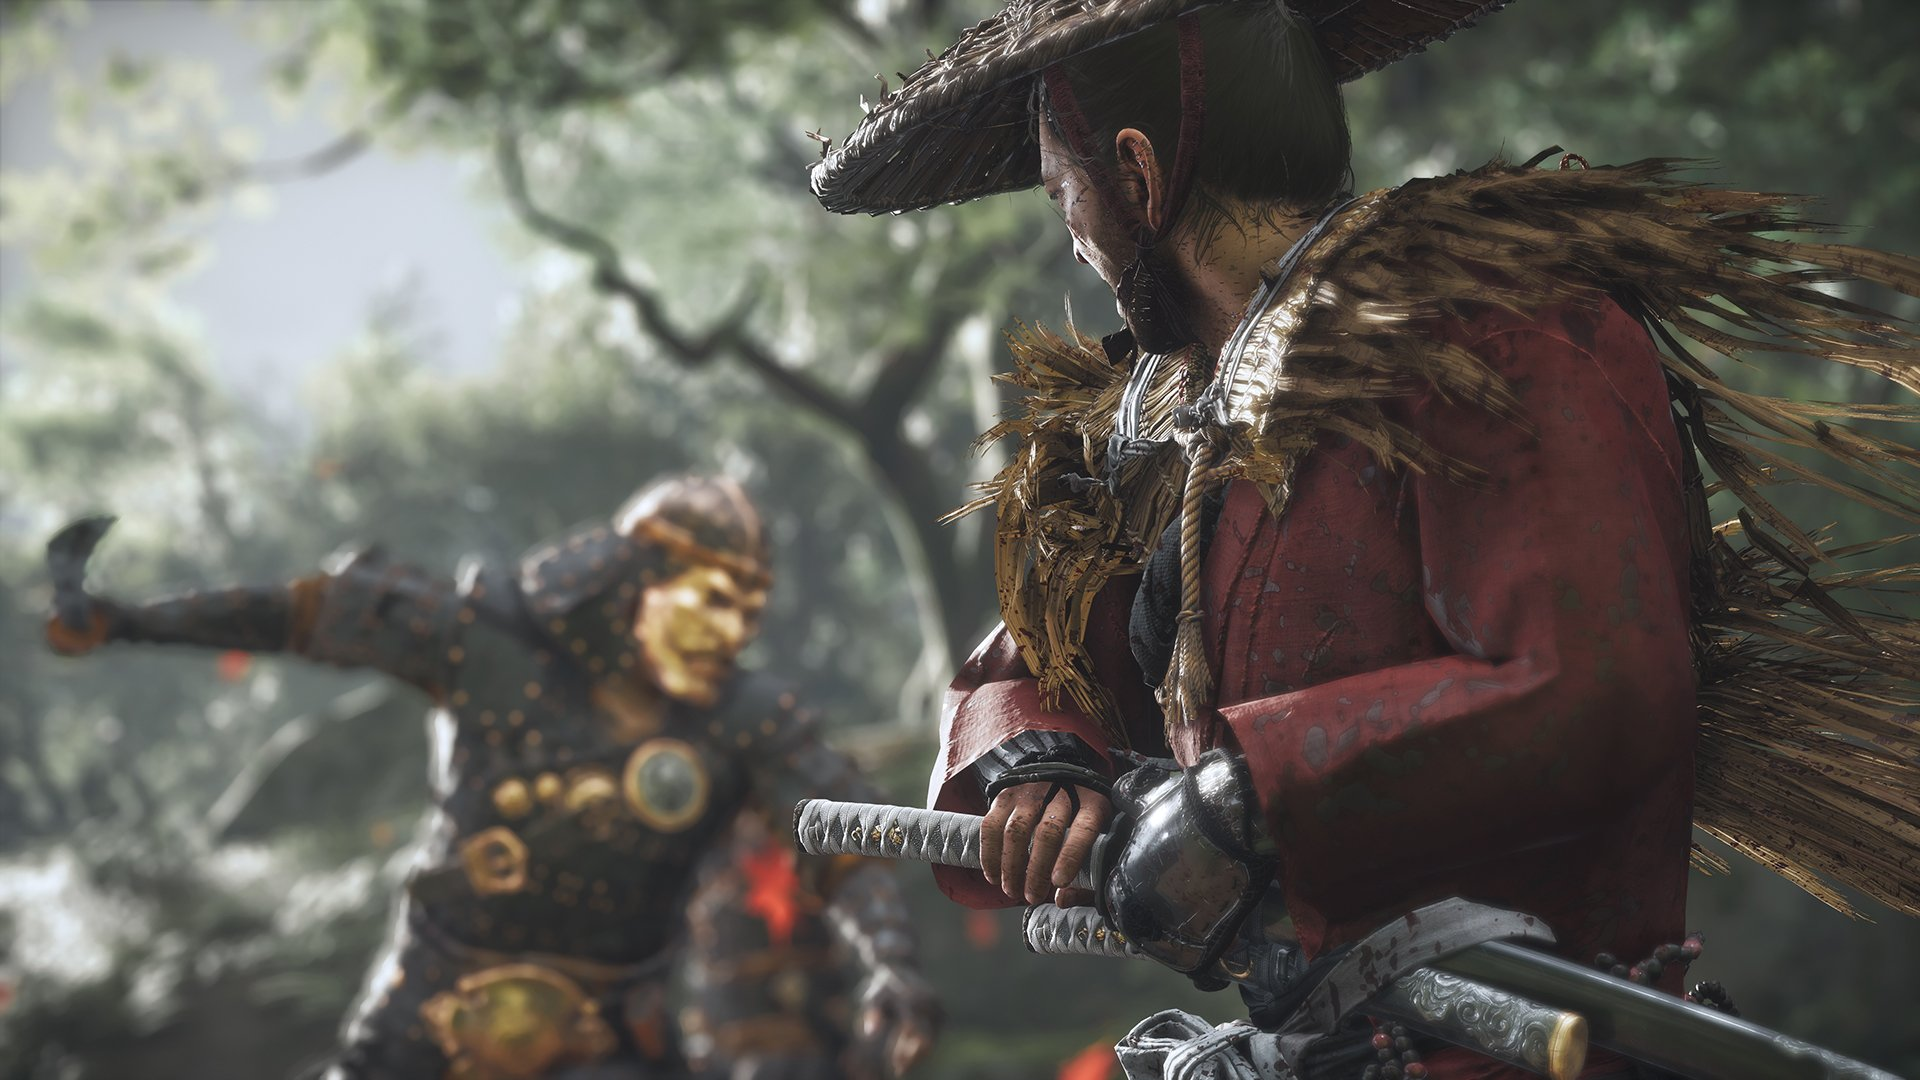 Can you lock on or target enemies in Ghost of Tsushima?